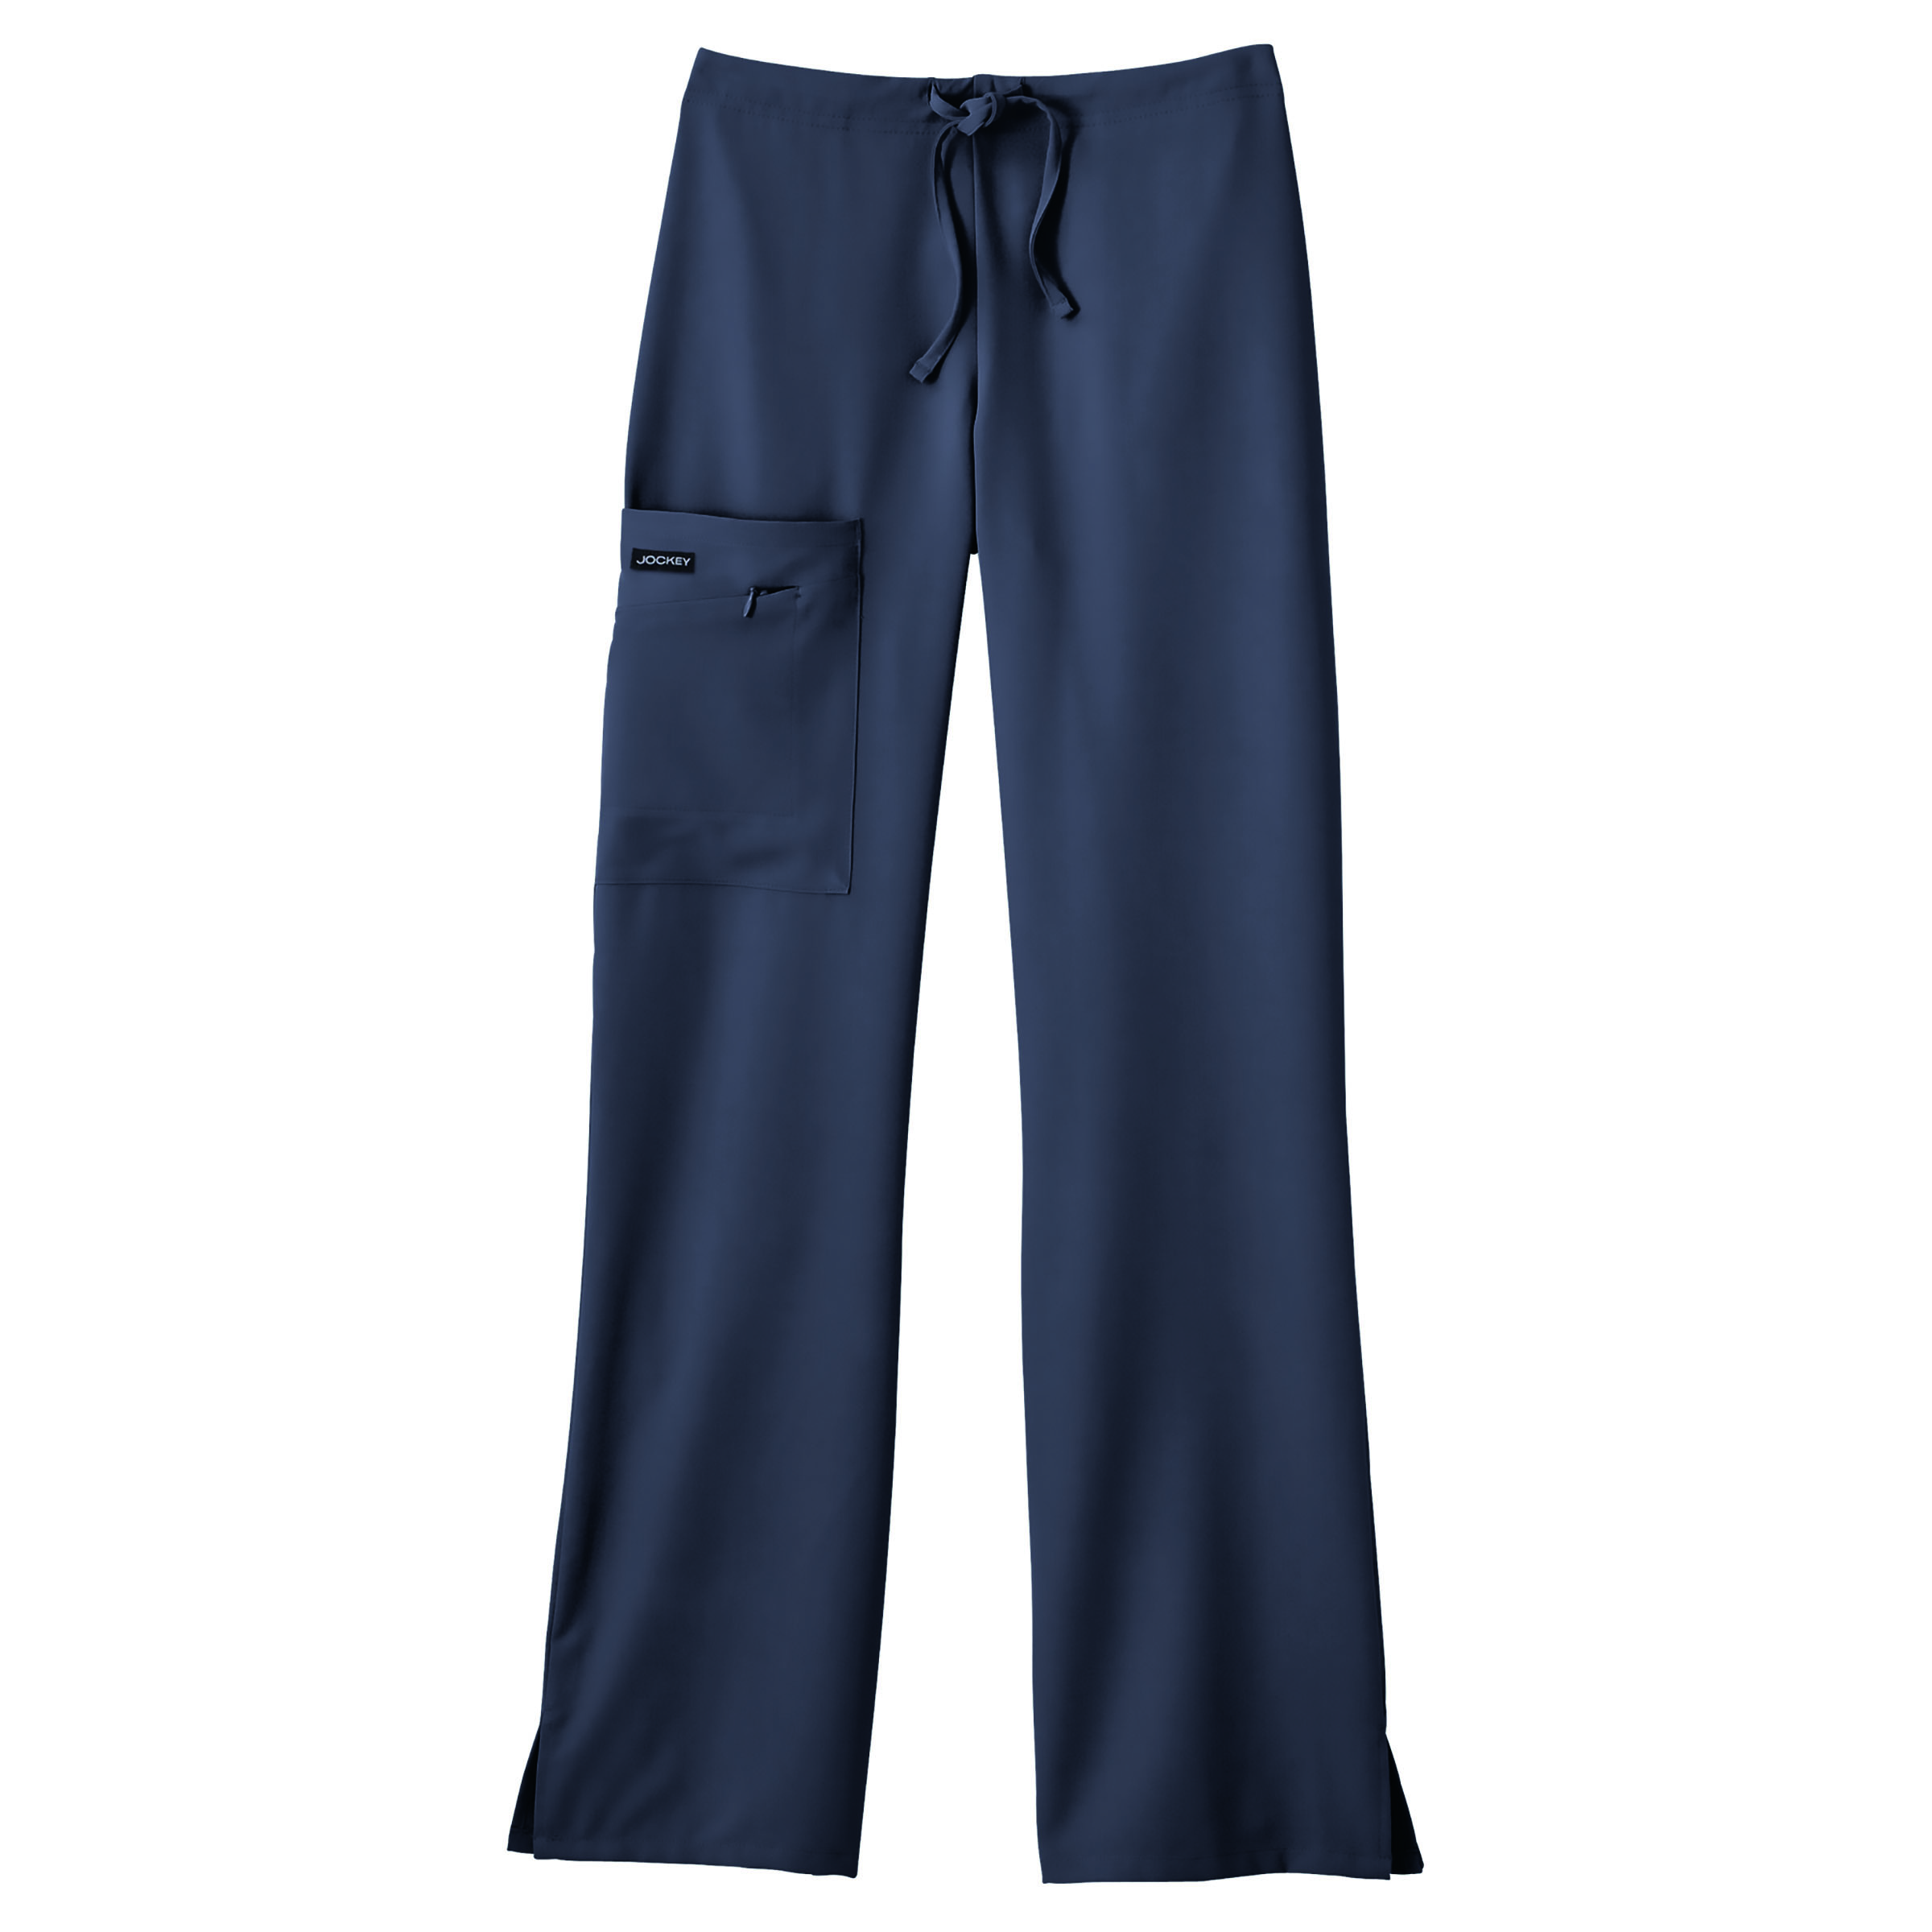 Jockey Favorite Fit Pant-Jockey Scrubs